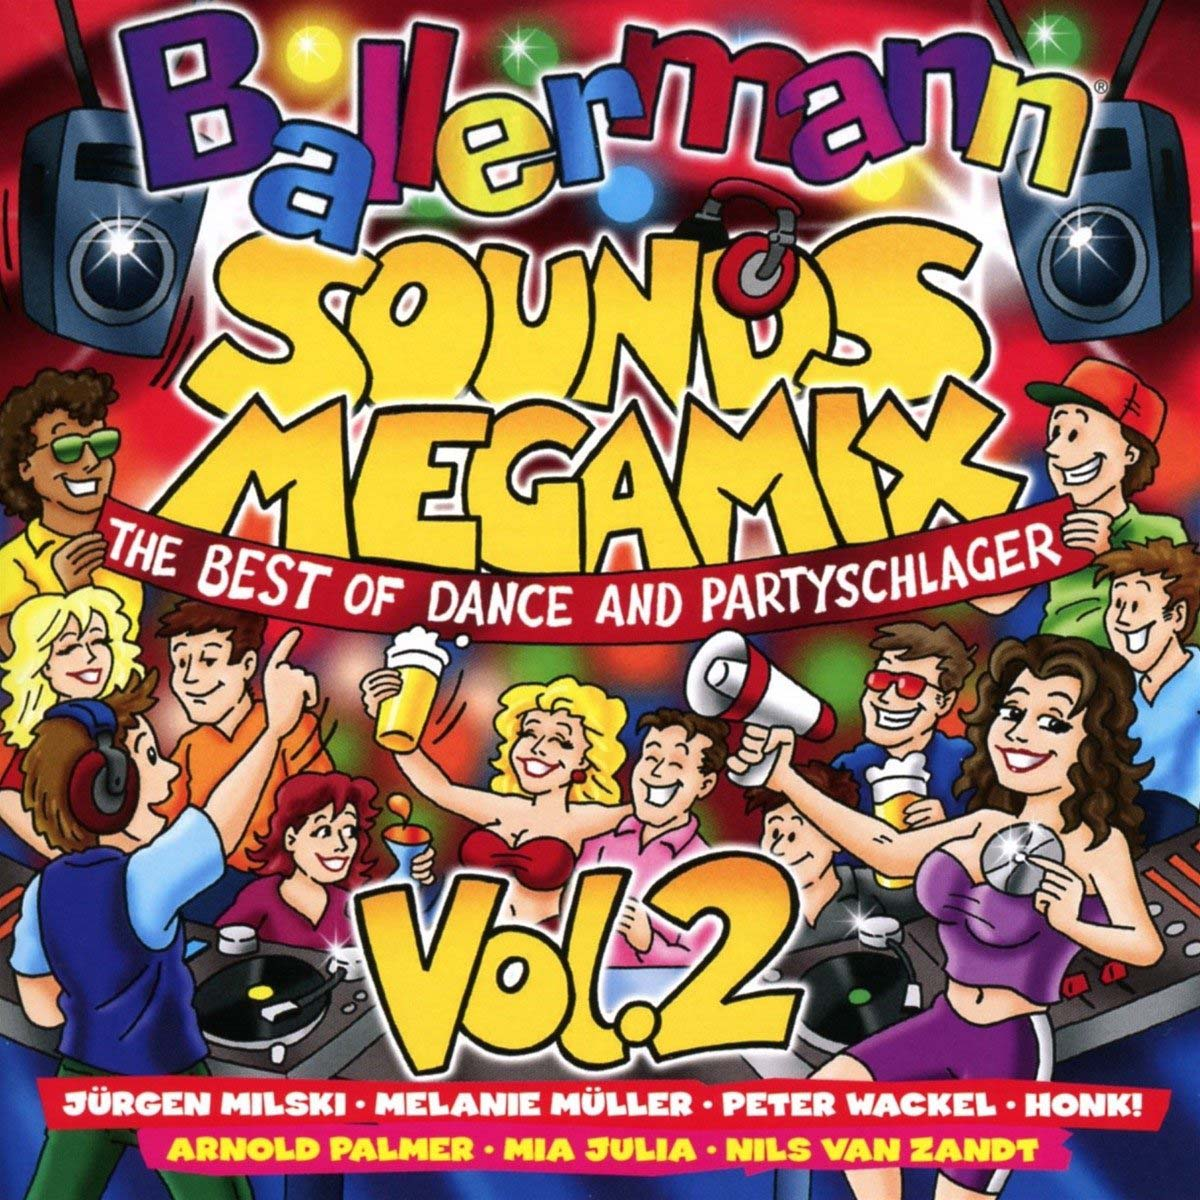 Ballermann Sounds Megamix Vol.2 - The Best Of Dance & Partyschlager (2 CD) johnny o rookie severin jayda soft touch лила грейс roxanna shineaz junior tiara suga mama x on jaylez maximnoise ники дэниэлс duap mc ричи сантьяго freestyle vol 40 best of final edition 3 cd